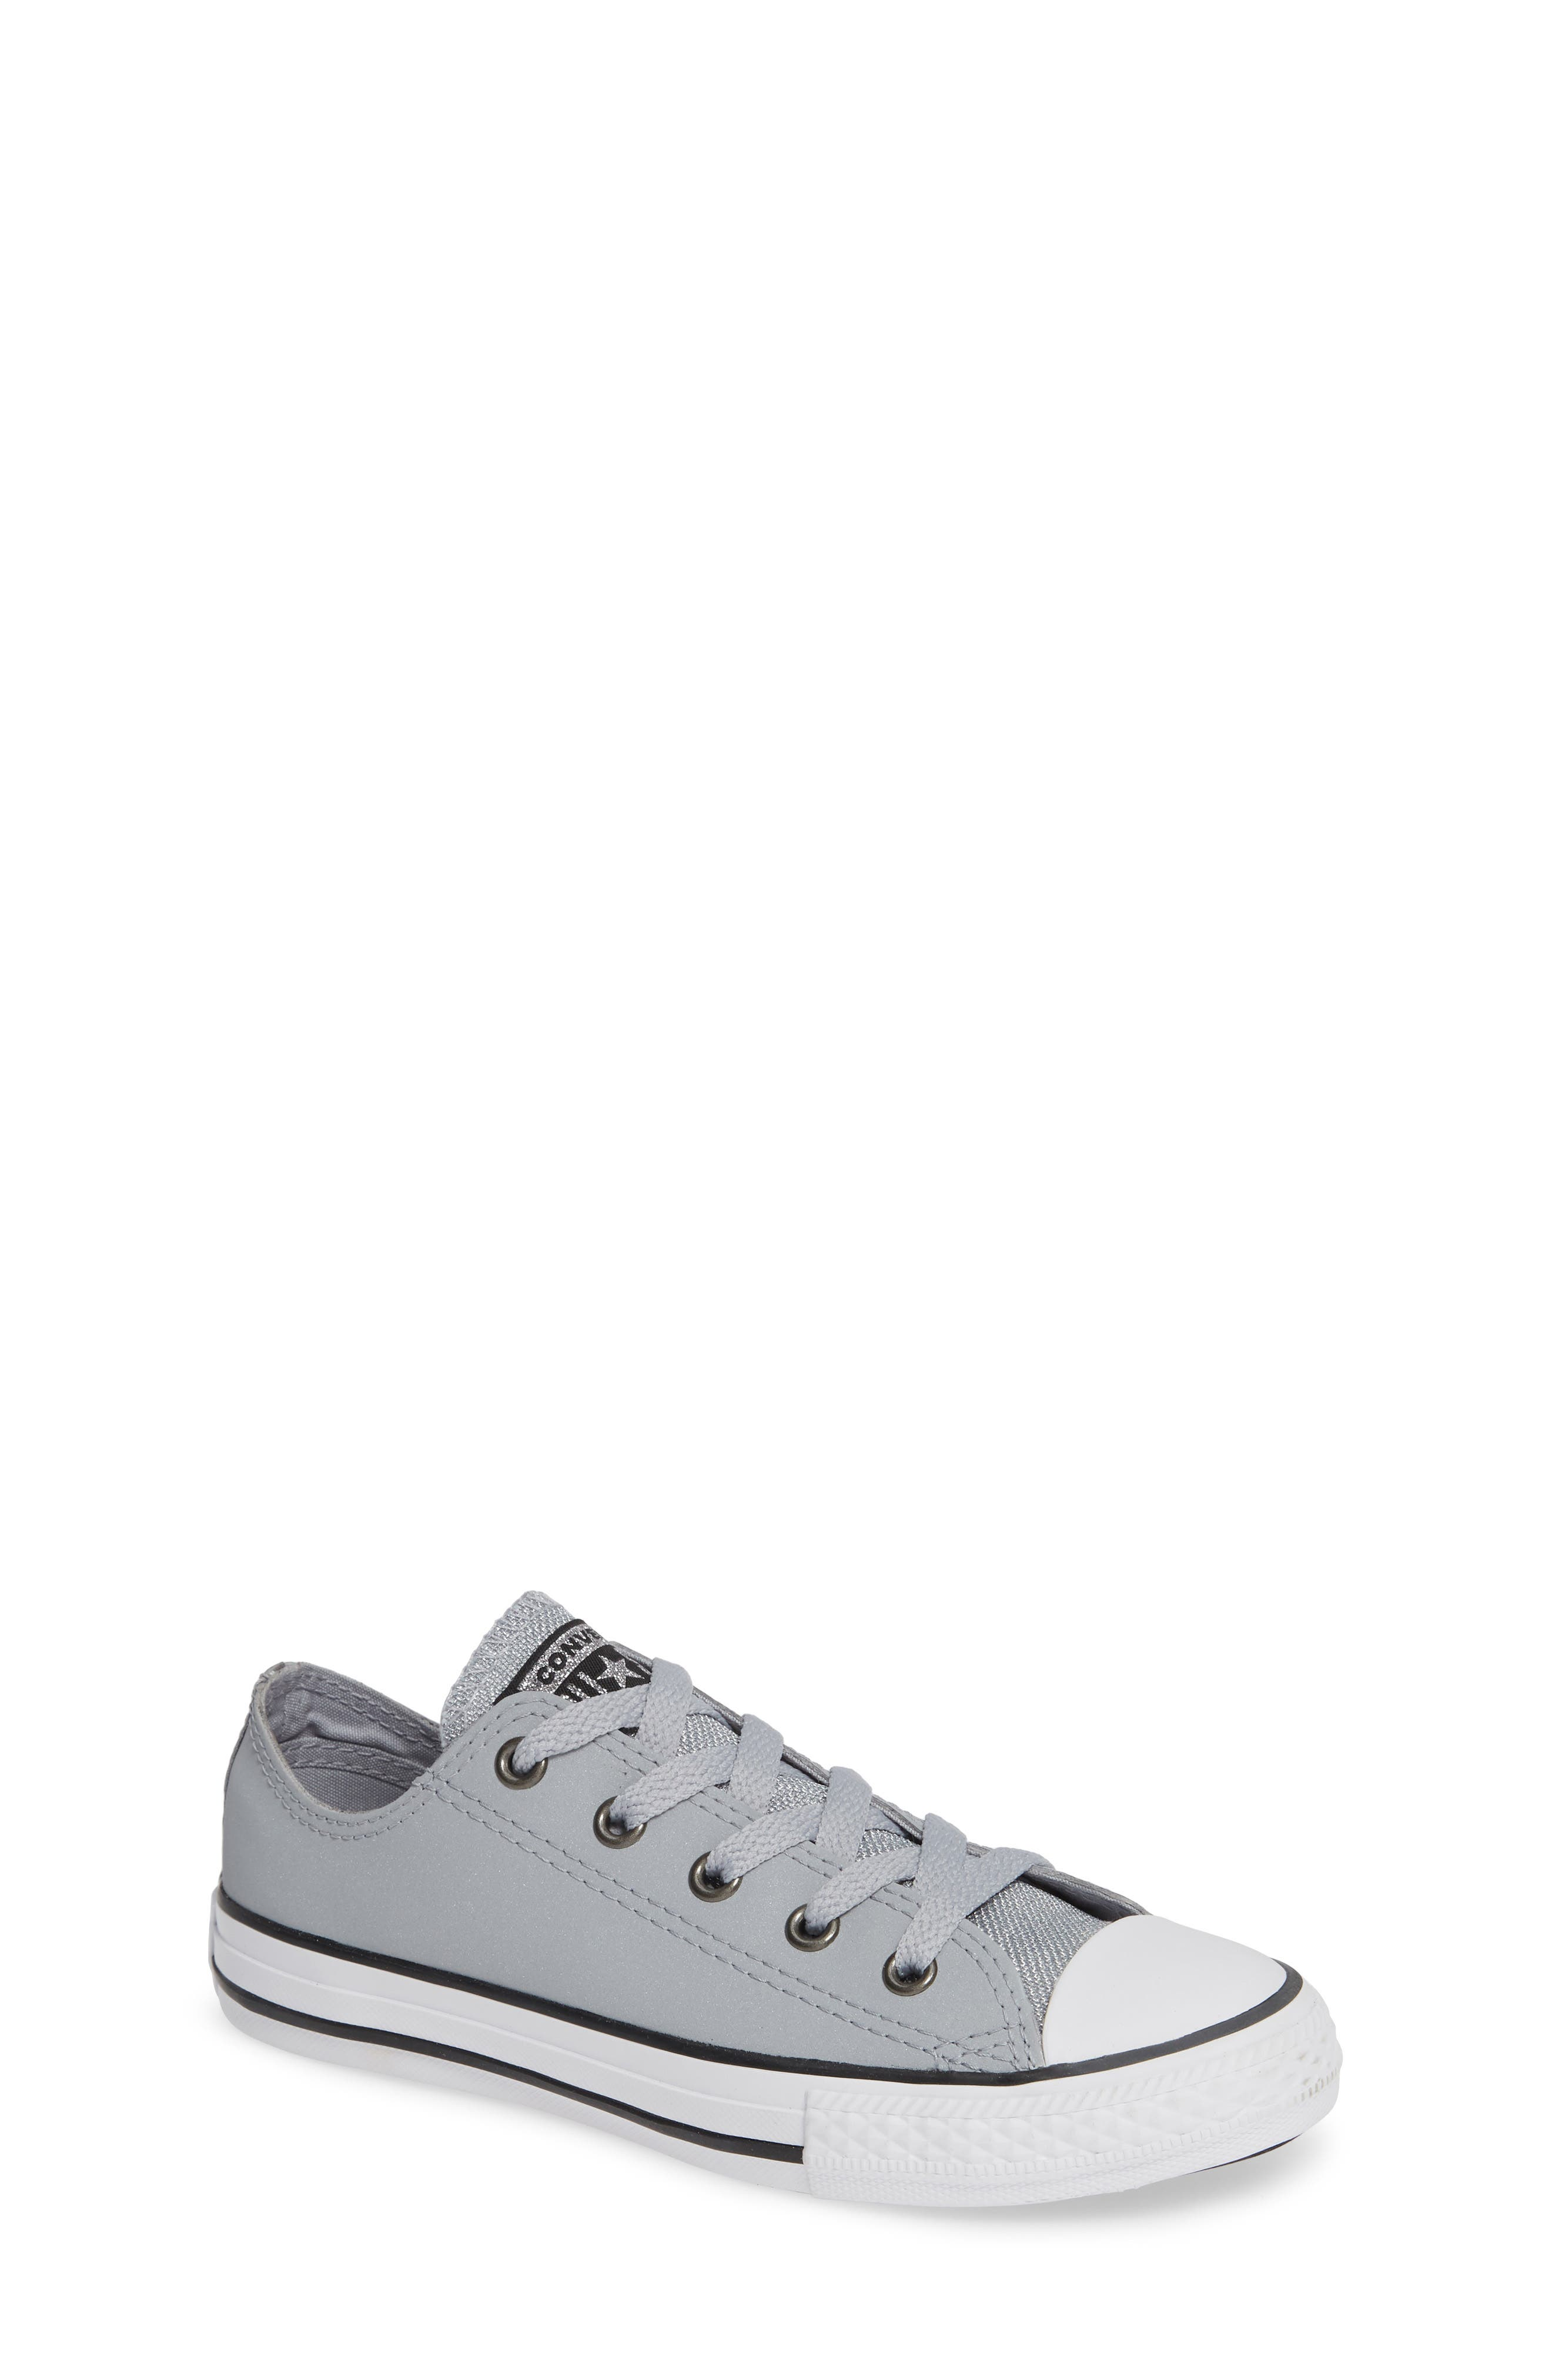 All Star<sup>®</sup> Metallic Low Top Sneaker,                             Main thumbnail 1, color,                             WOLF GREY